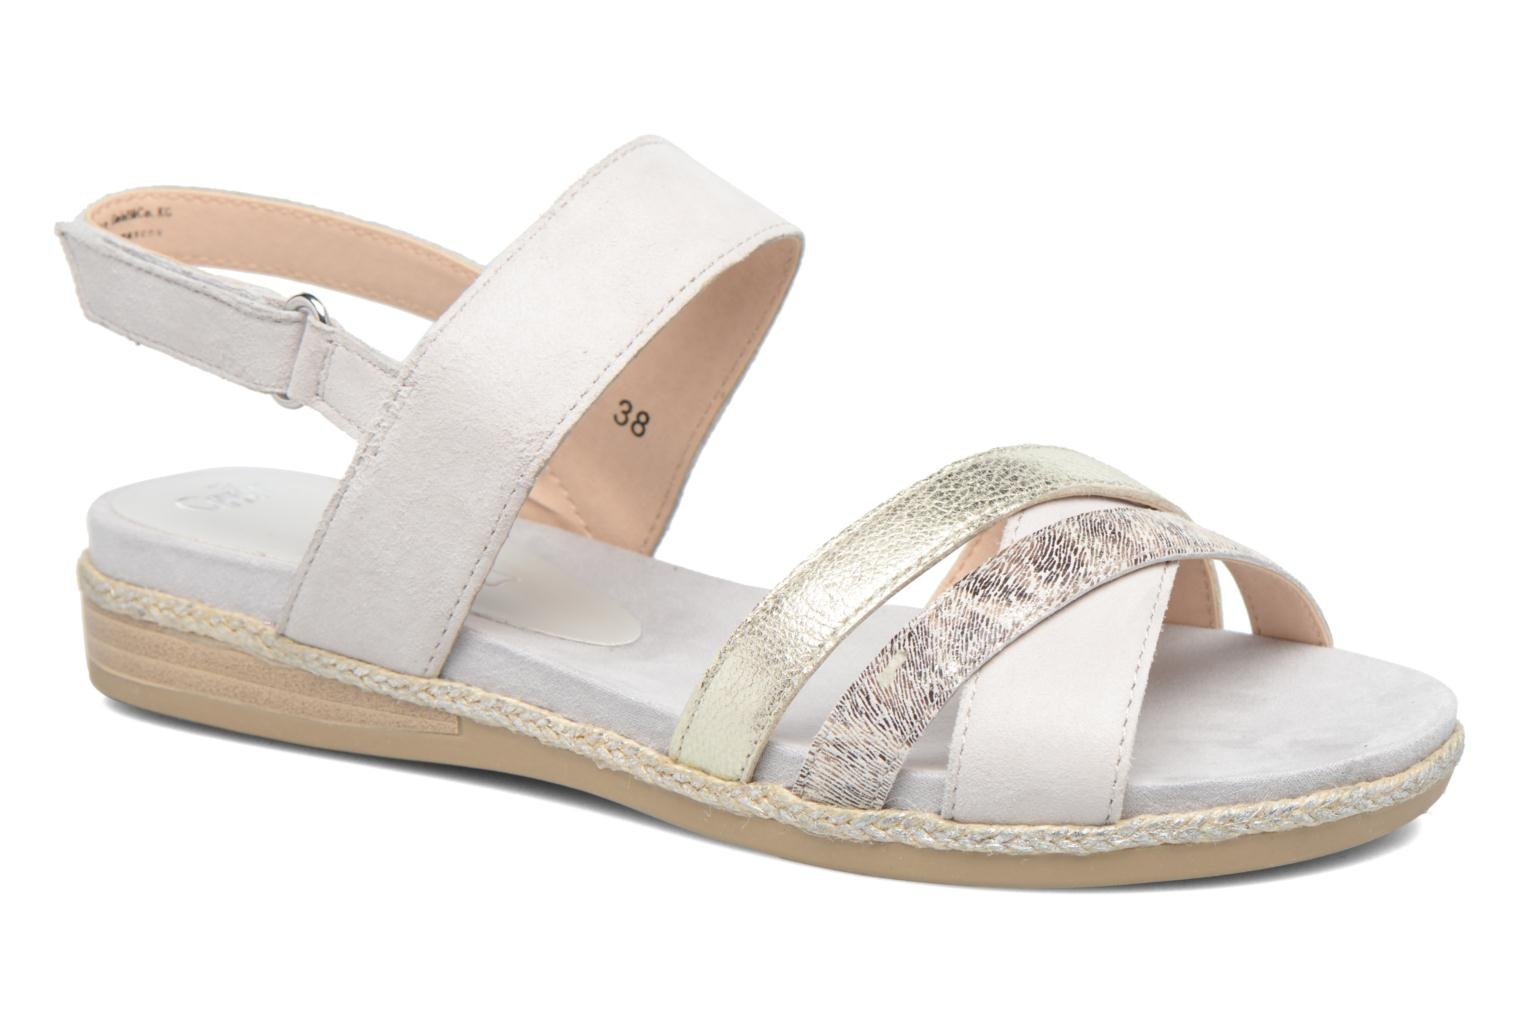 Marques Chaussure femme Caprice femme Cynthia Light Grey